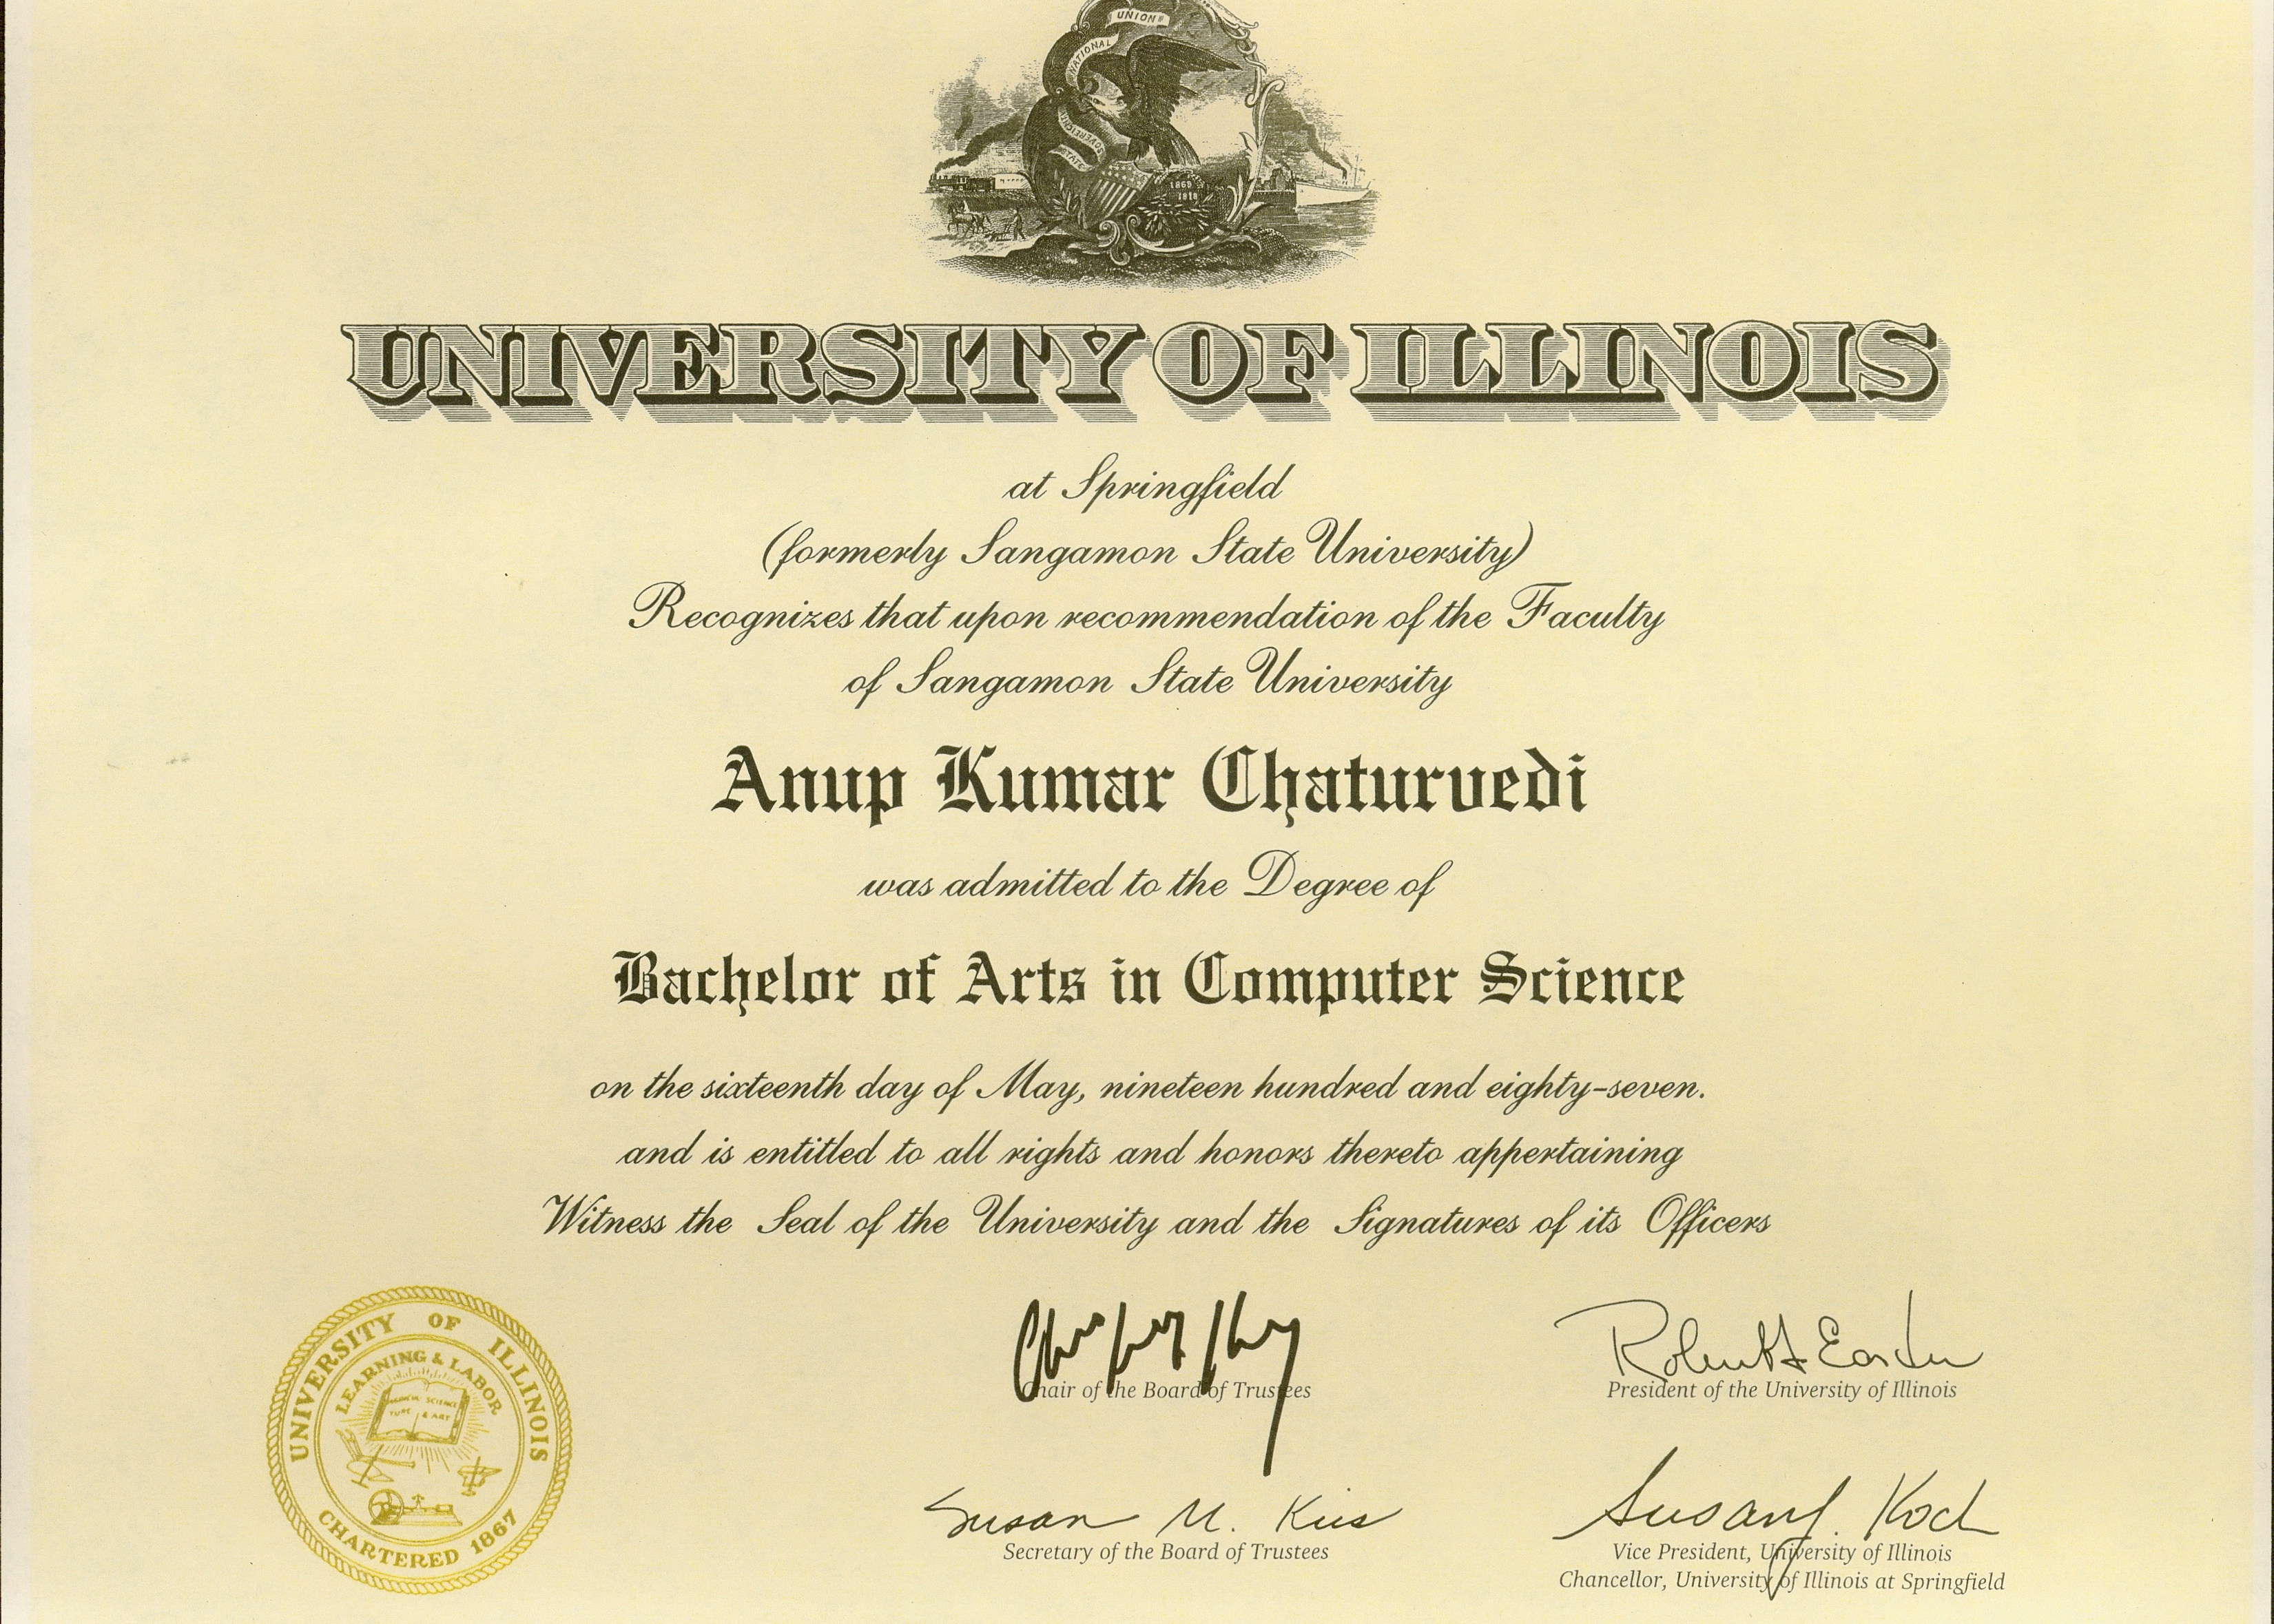 Bachelors Degree in Computer Science (1986)